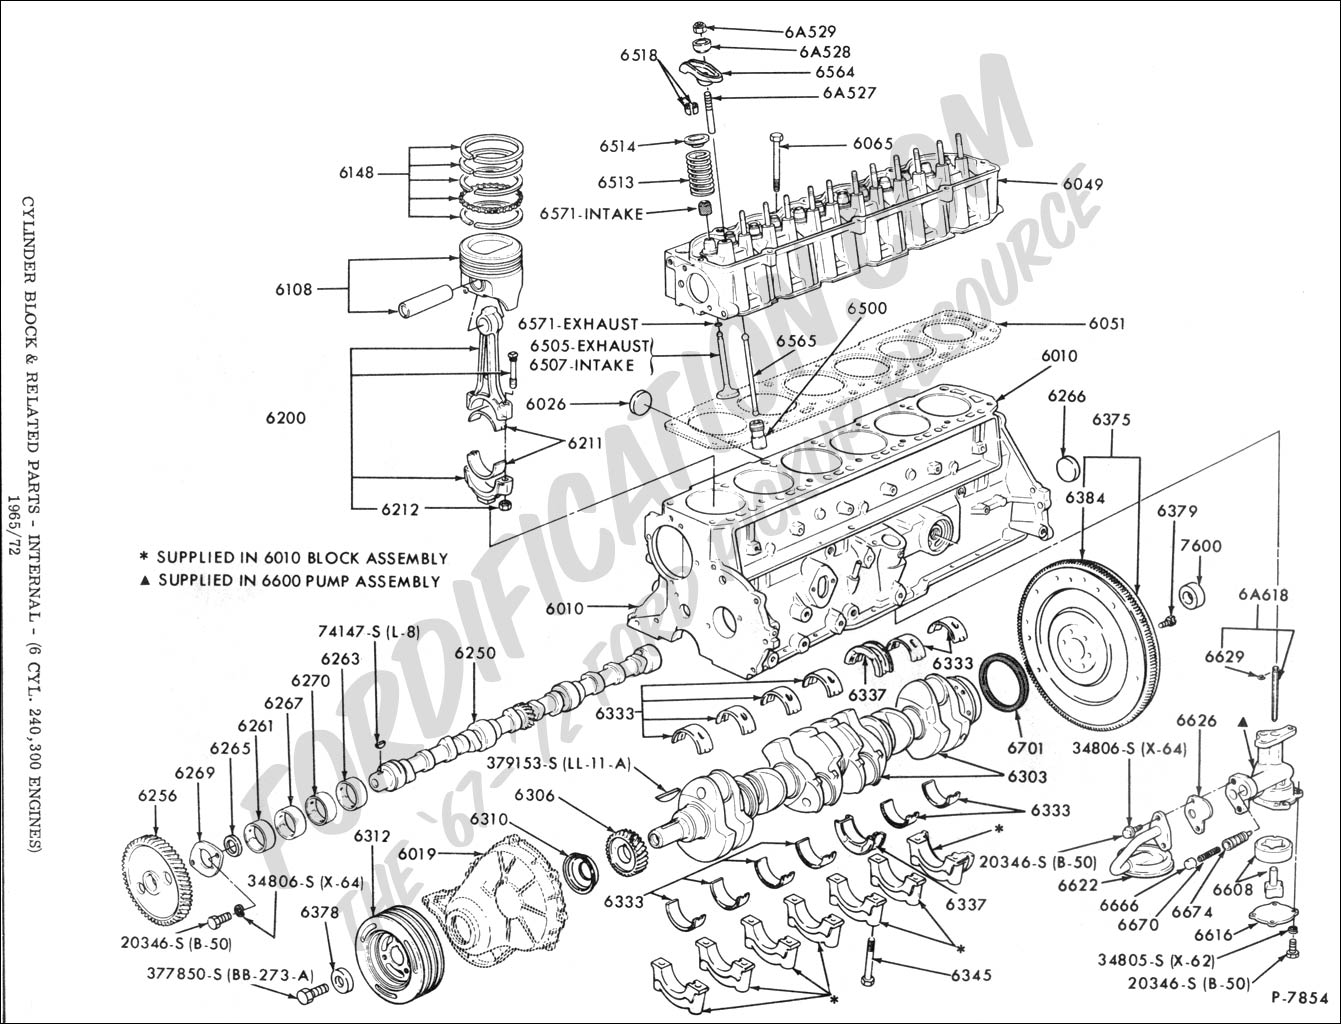 Schematics e as well 1459608 460 Distributor Wiring furthermore P2020 P2015 Intake Flap Codes 2870358 together with Page3 in addition Starter 1972 Chevy Truck Wiring Diagram. on 350 v8 engine diagram